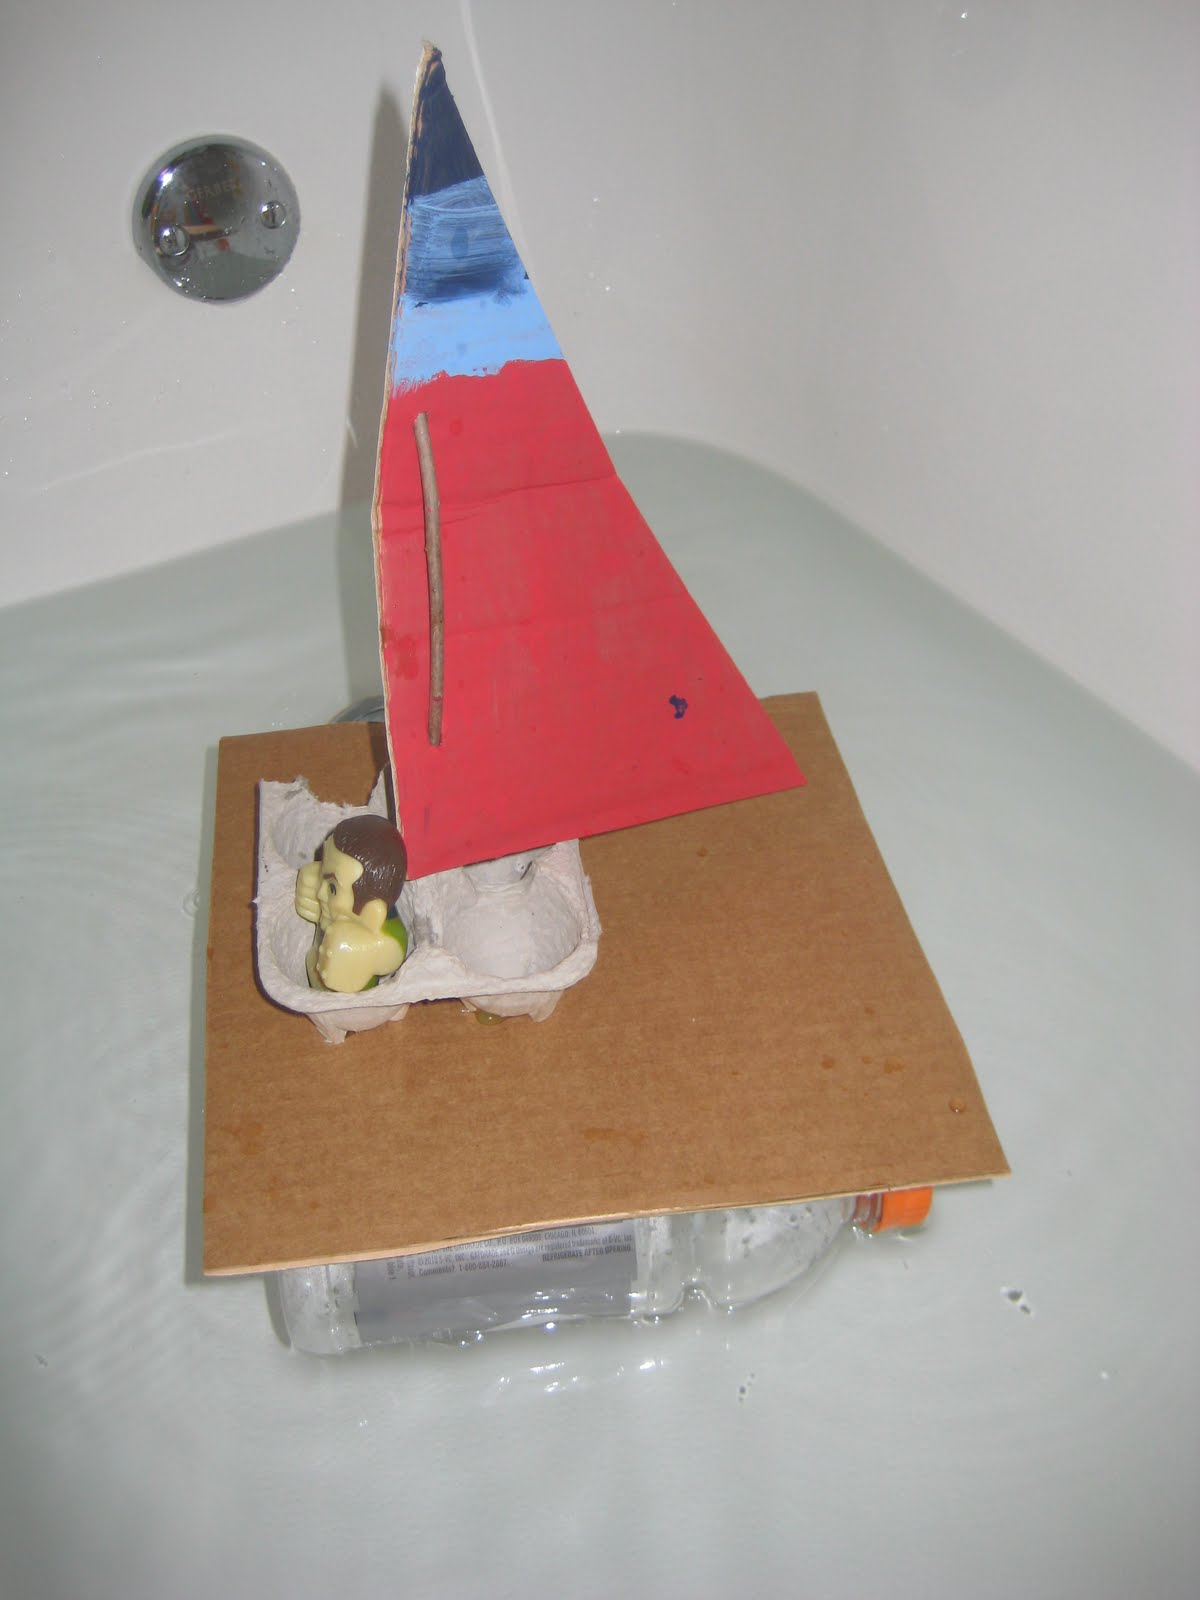 how to build a model boat from recycled materials